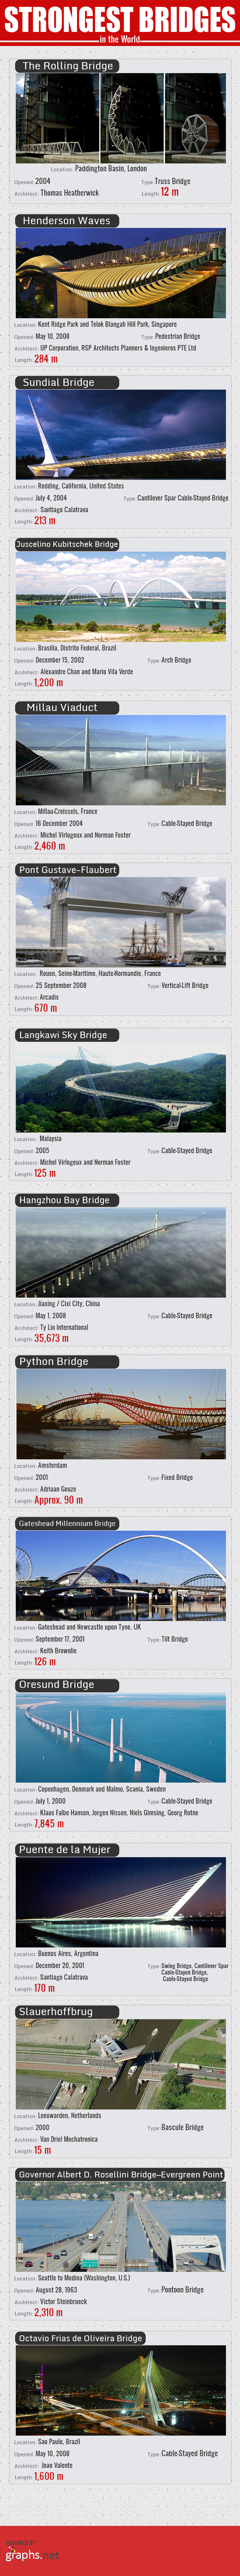 Strongest Bridges in the World